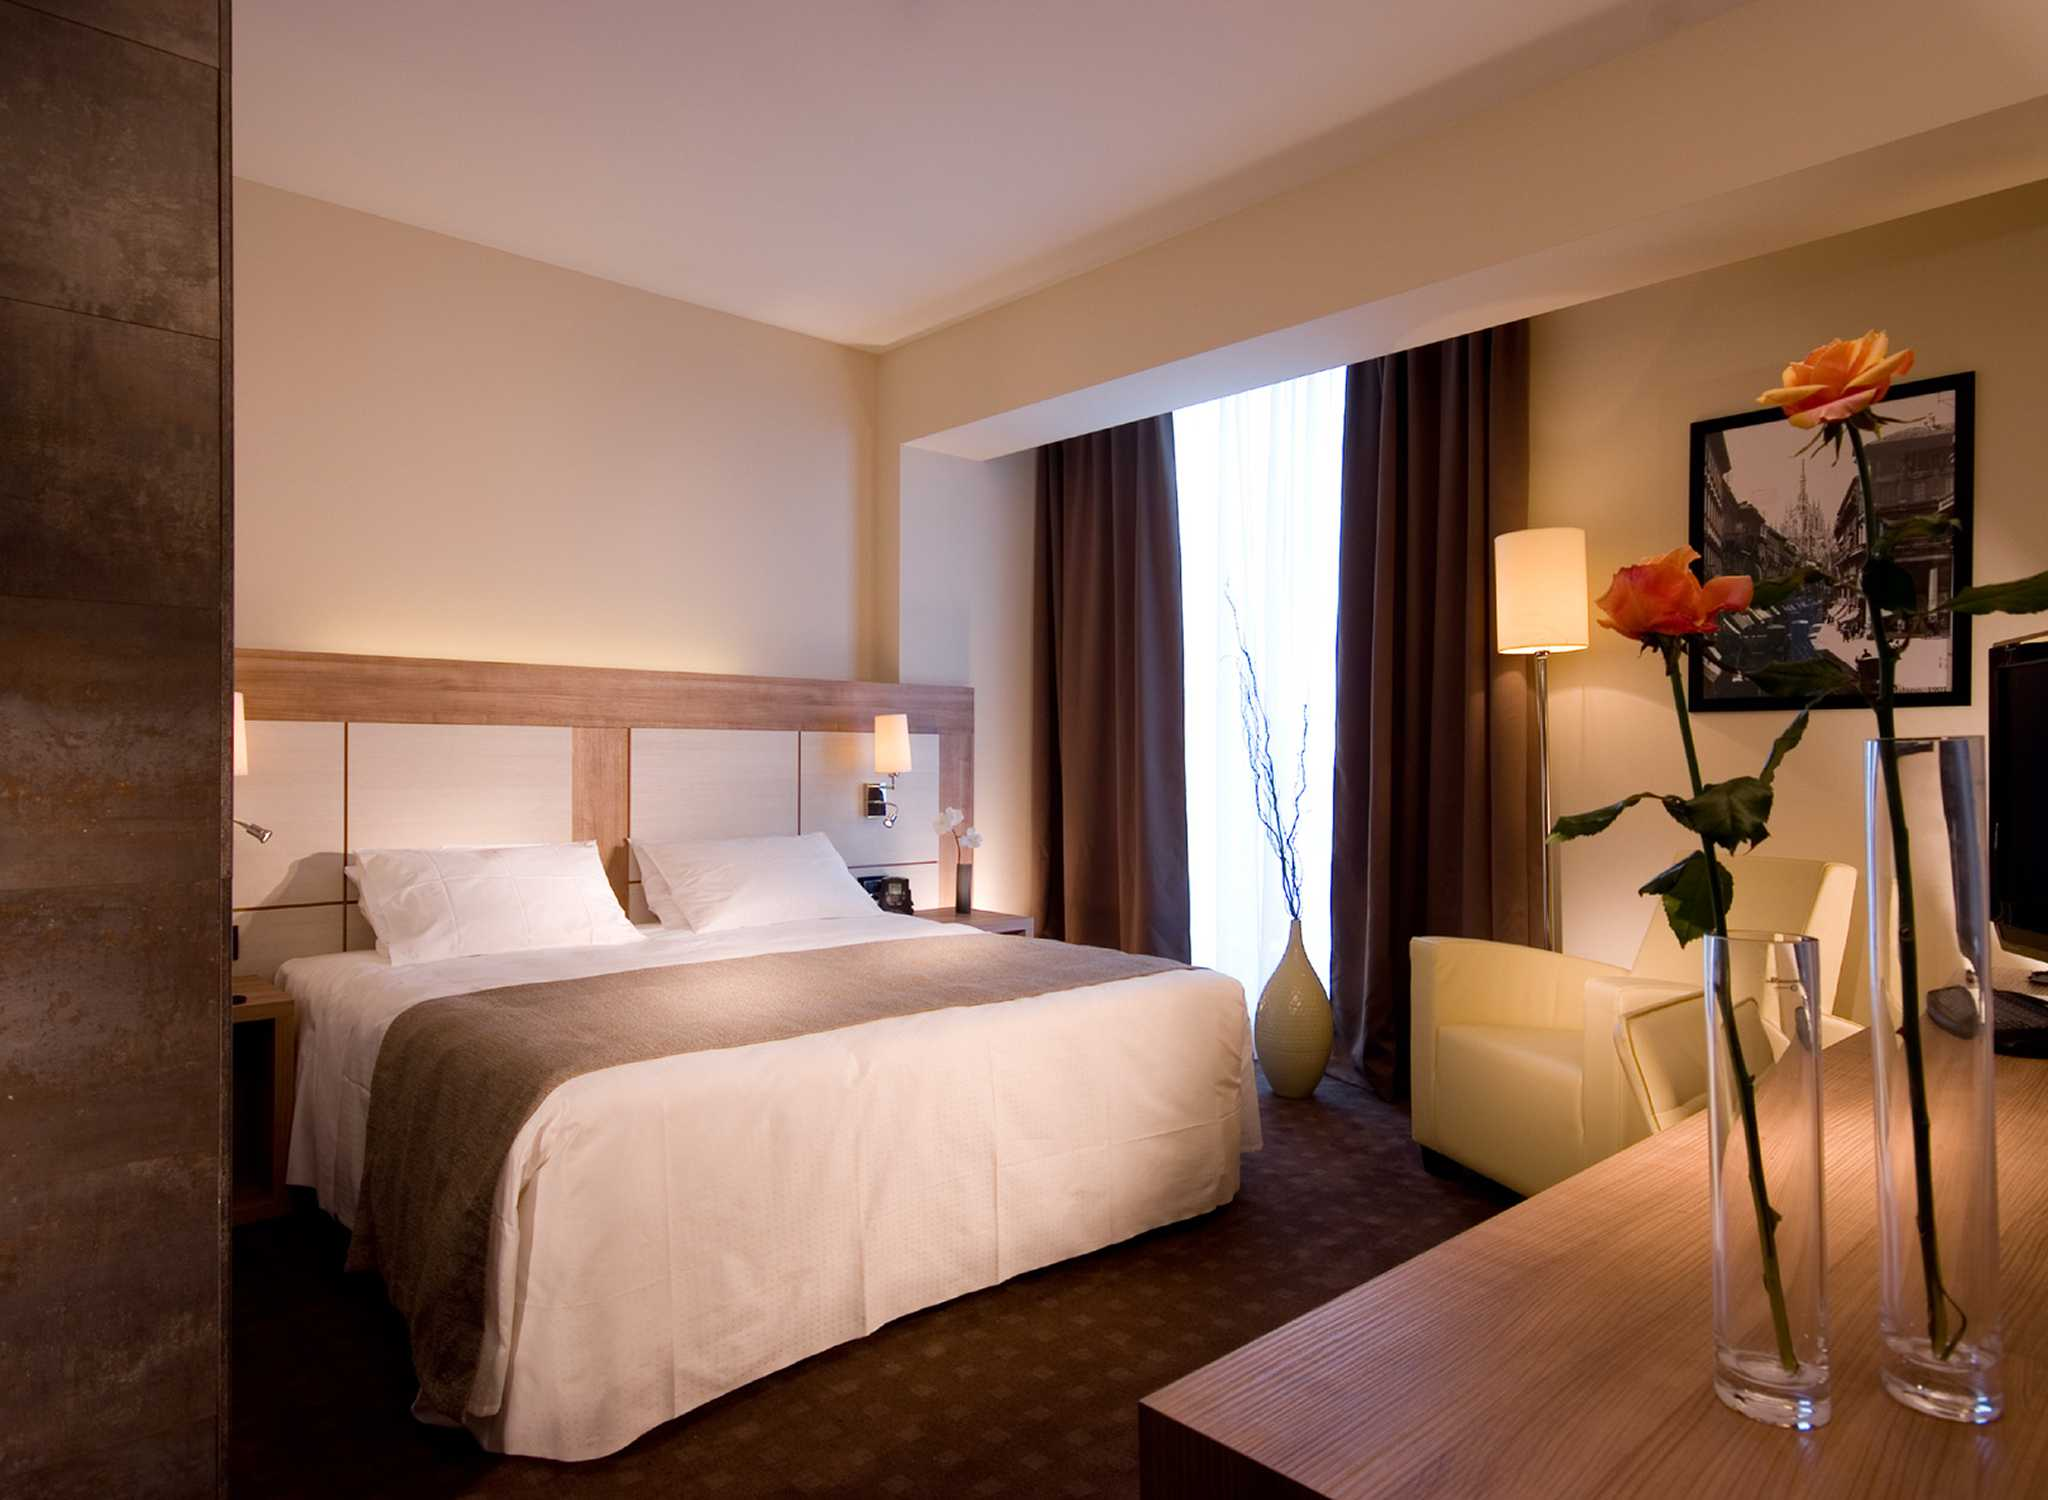 Business hotels in mailand doubletree by hilton hotel milan italien - Chambre de commerce milan ...